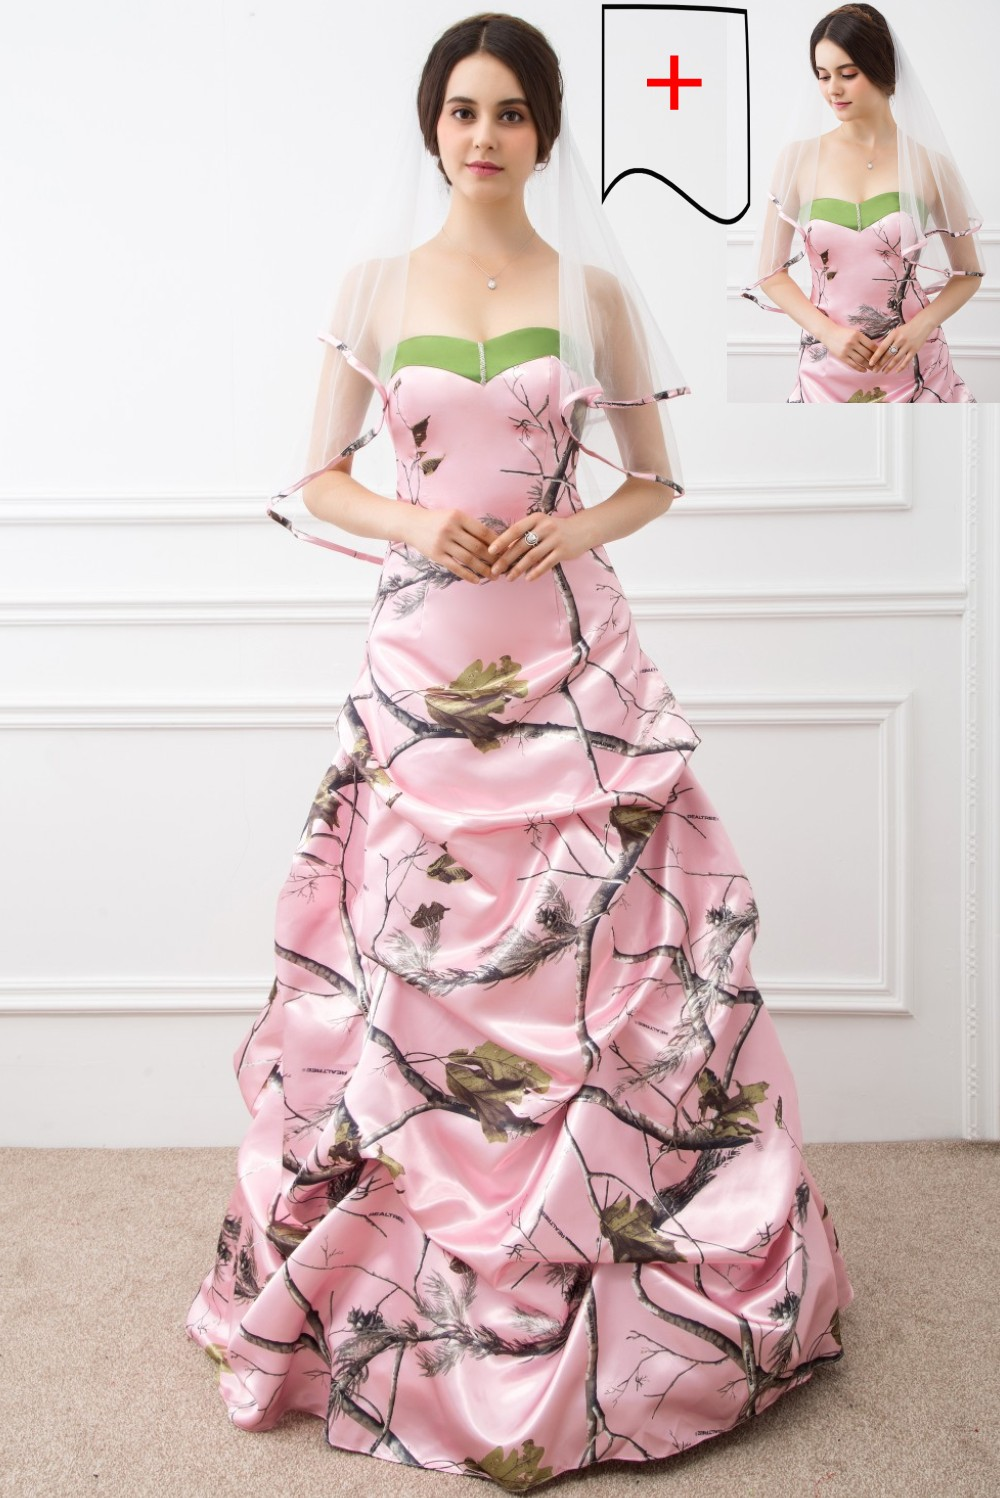 2017 Ball Gown Pink Camo Wedding Dresses Sleeveless Sweetheart Lace Up Camouflage Appliques Ruched Bridal Gowns Custom Veil Free